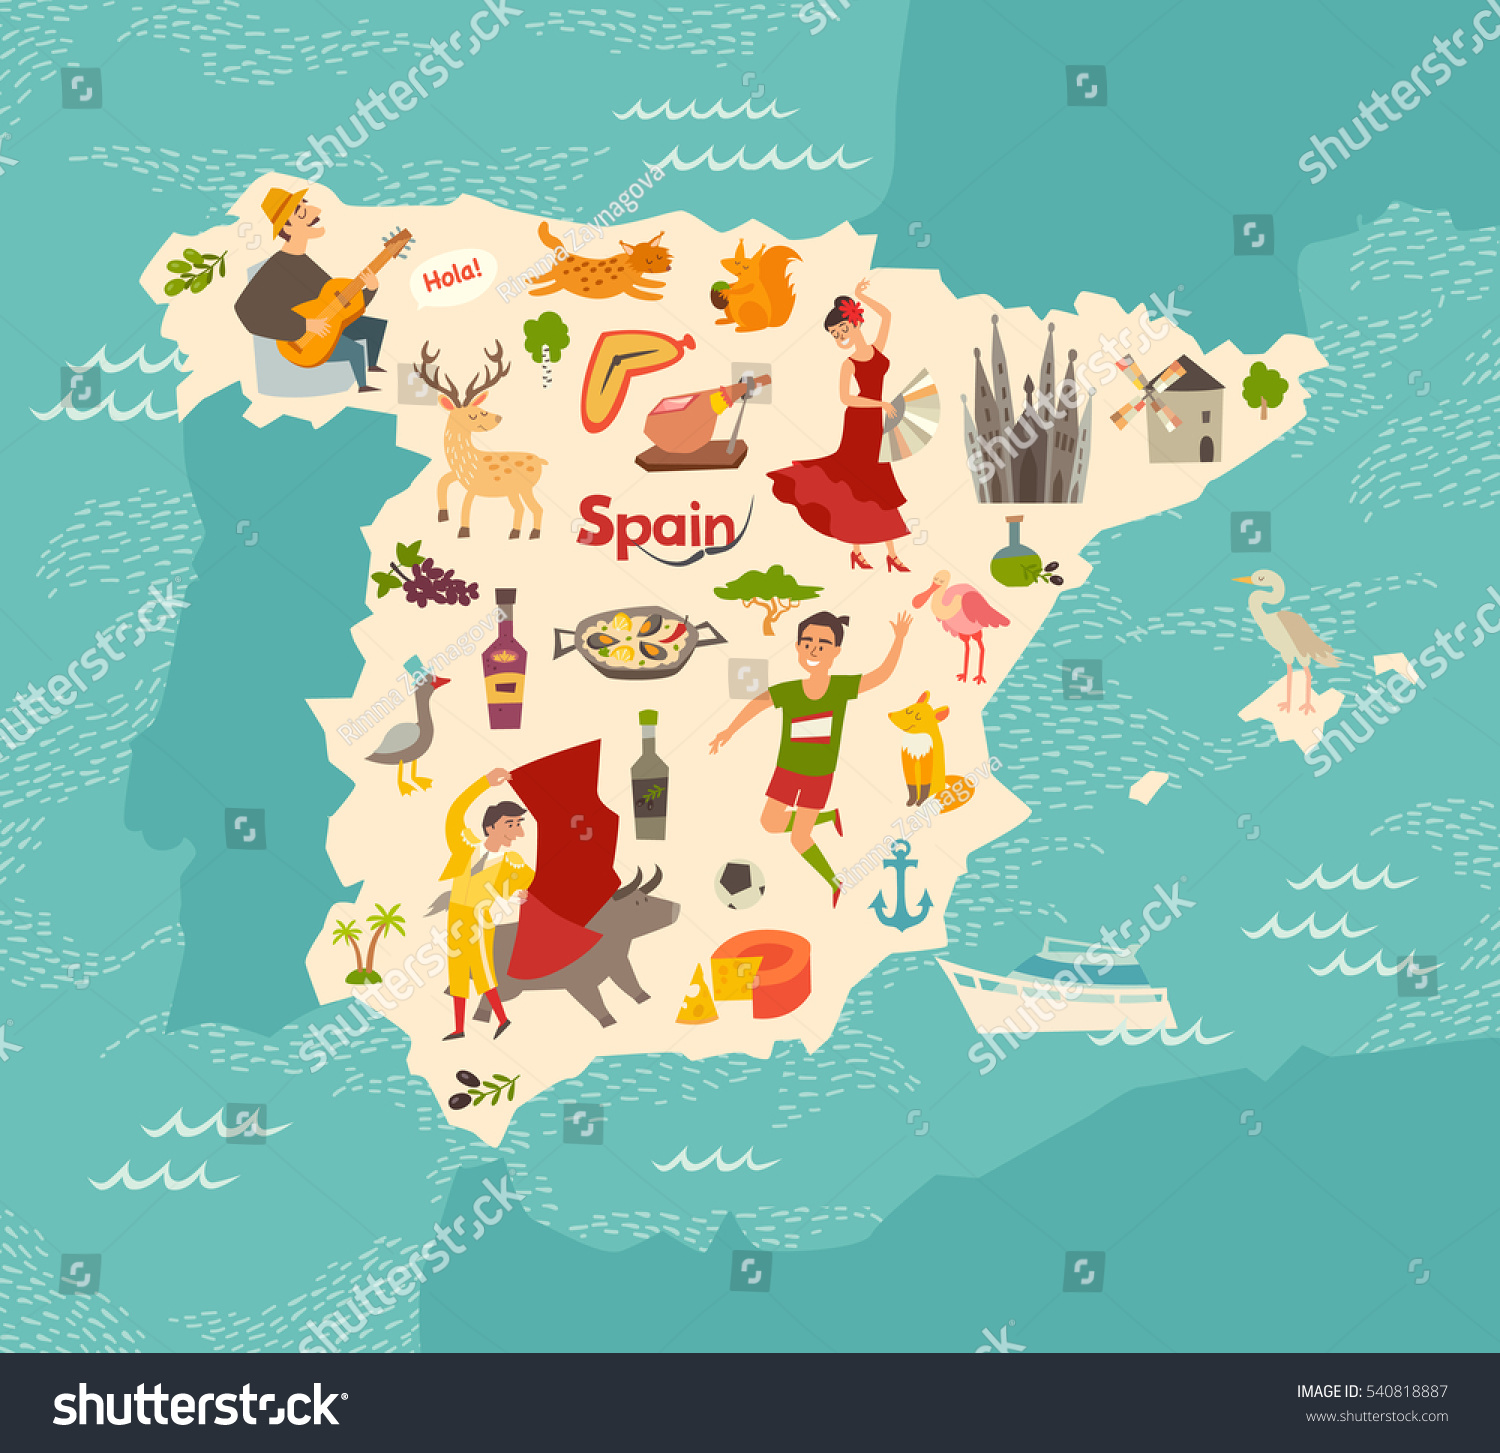 spain map vector illustrated map spain stock vector 540818887